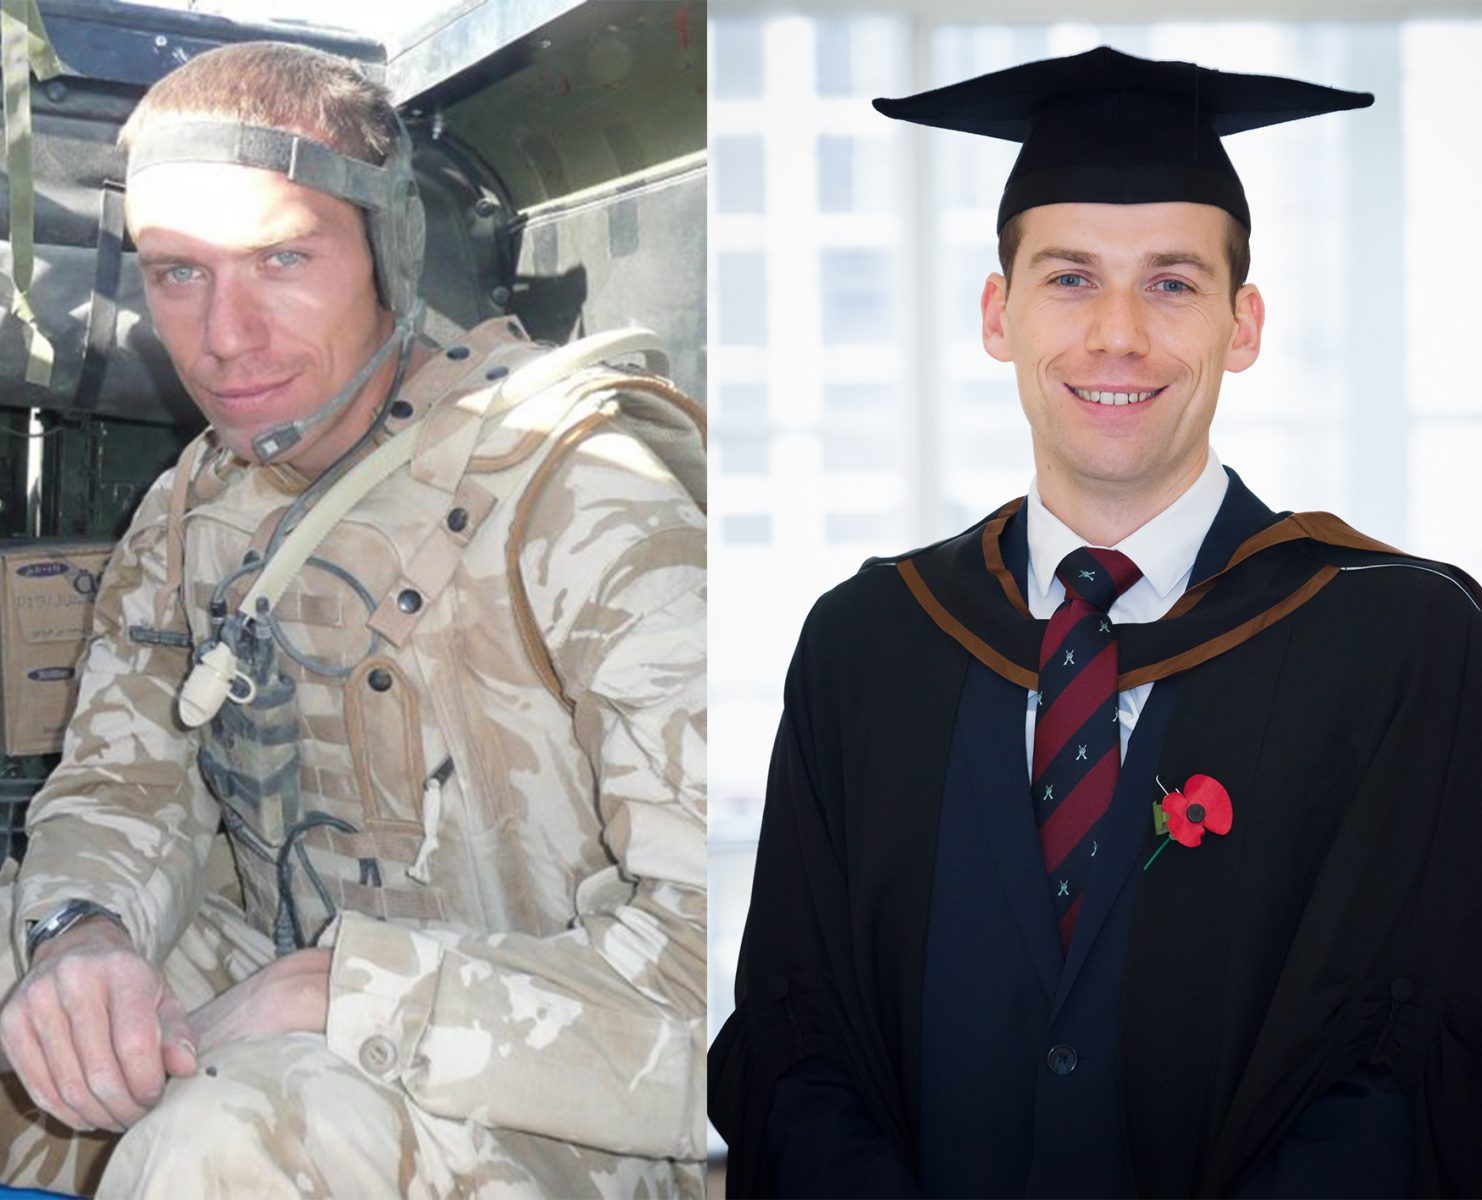 Military intelligence: former RAF gunner swaps military uniform for gown and mortar board